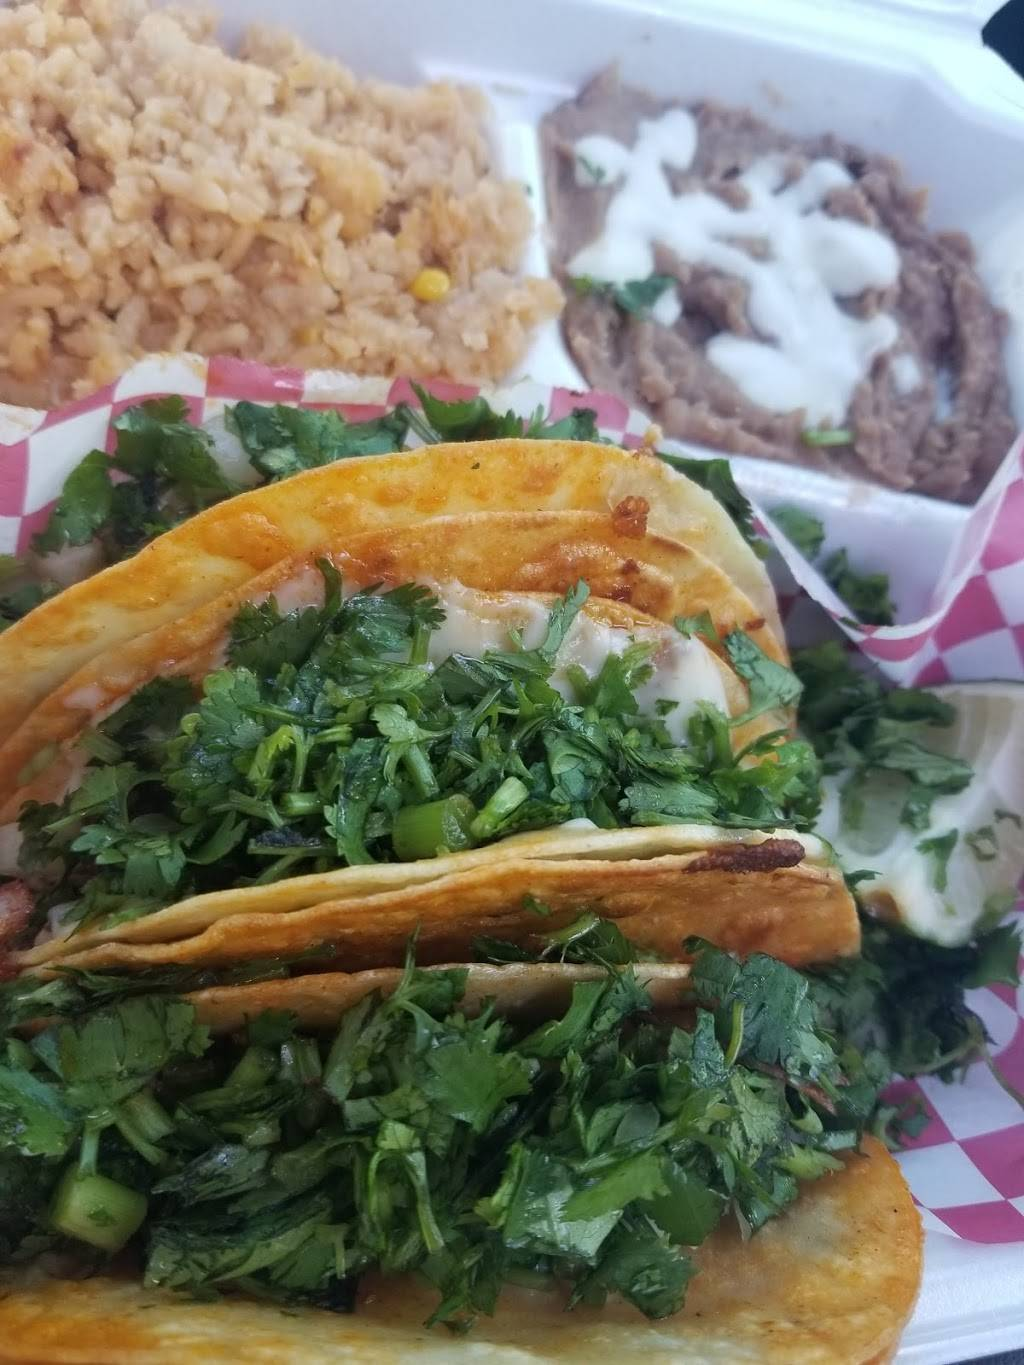 Don Justo Red Tacos | restaurant | 1942 S Garnett Rd, Tulsa, OK 74128, USA | 9183782967 OR +1 918-378-2967